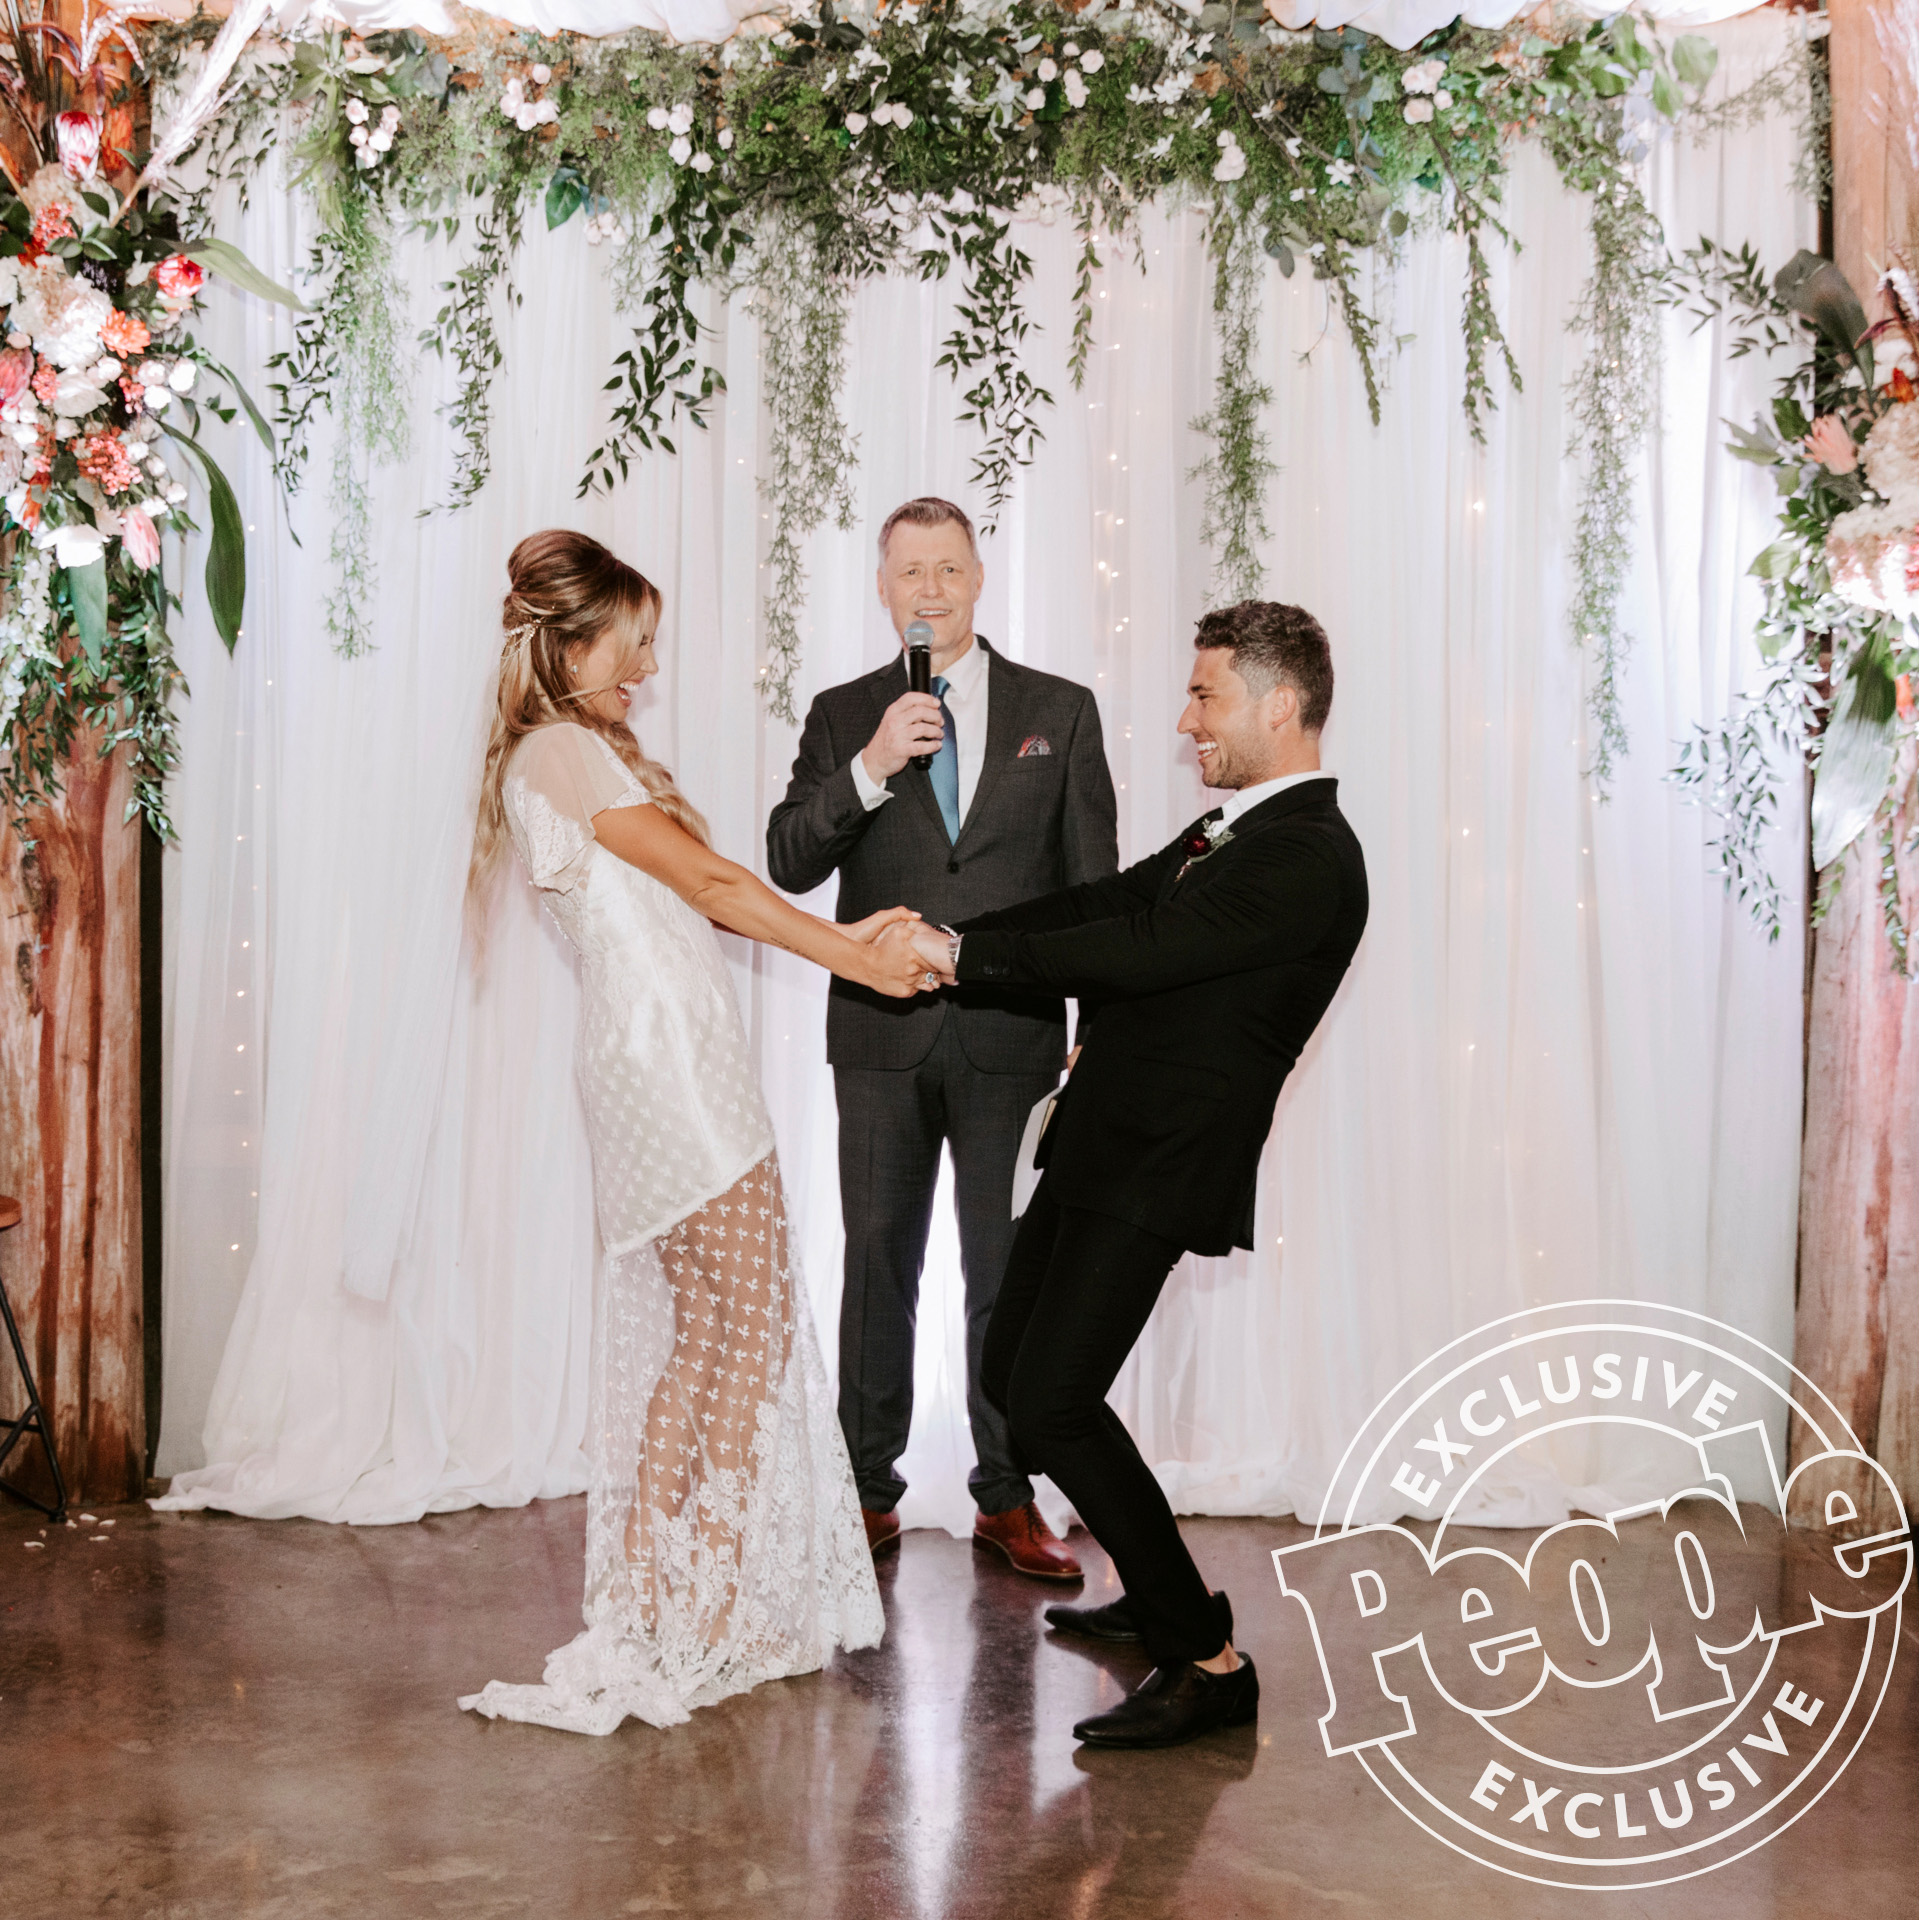 Wedding of Carly Pearce and Michael Ray